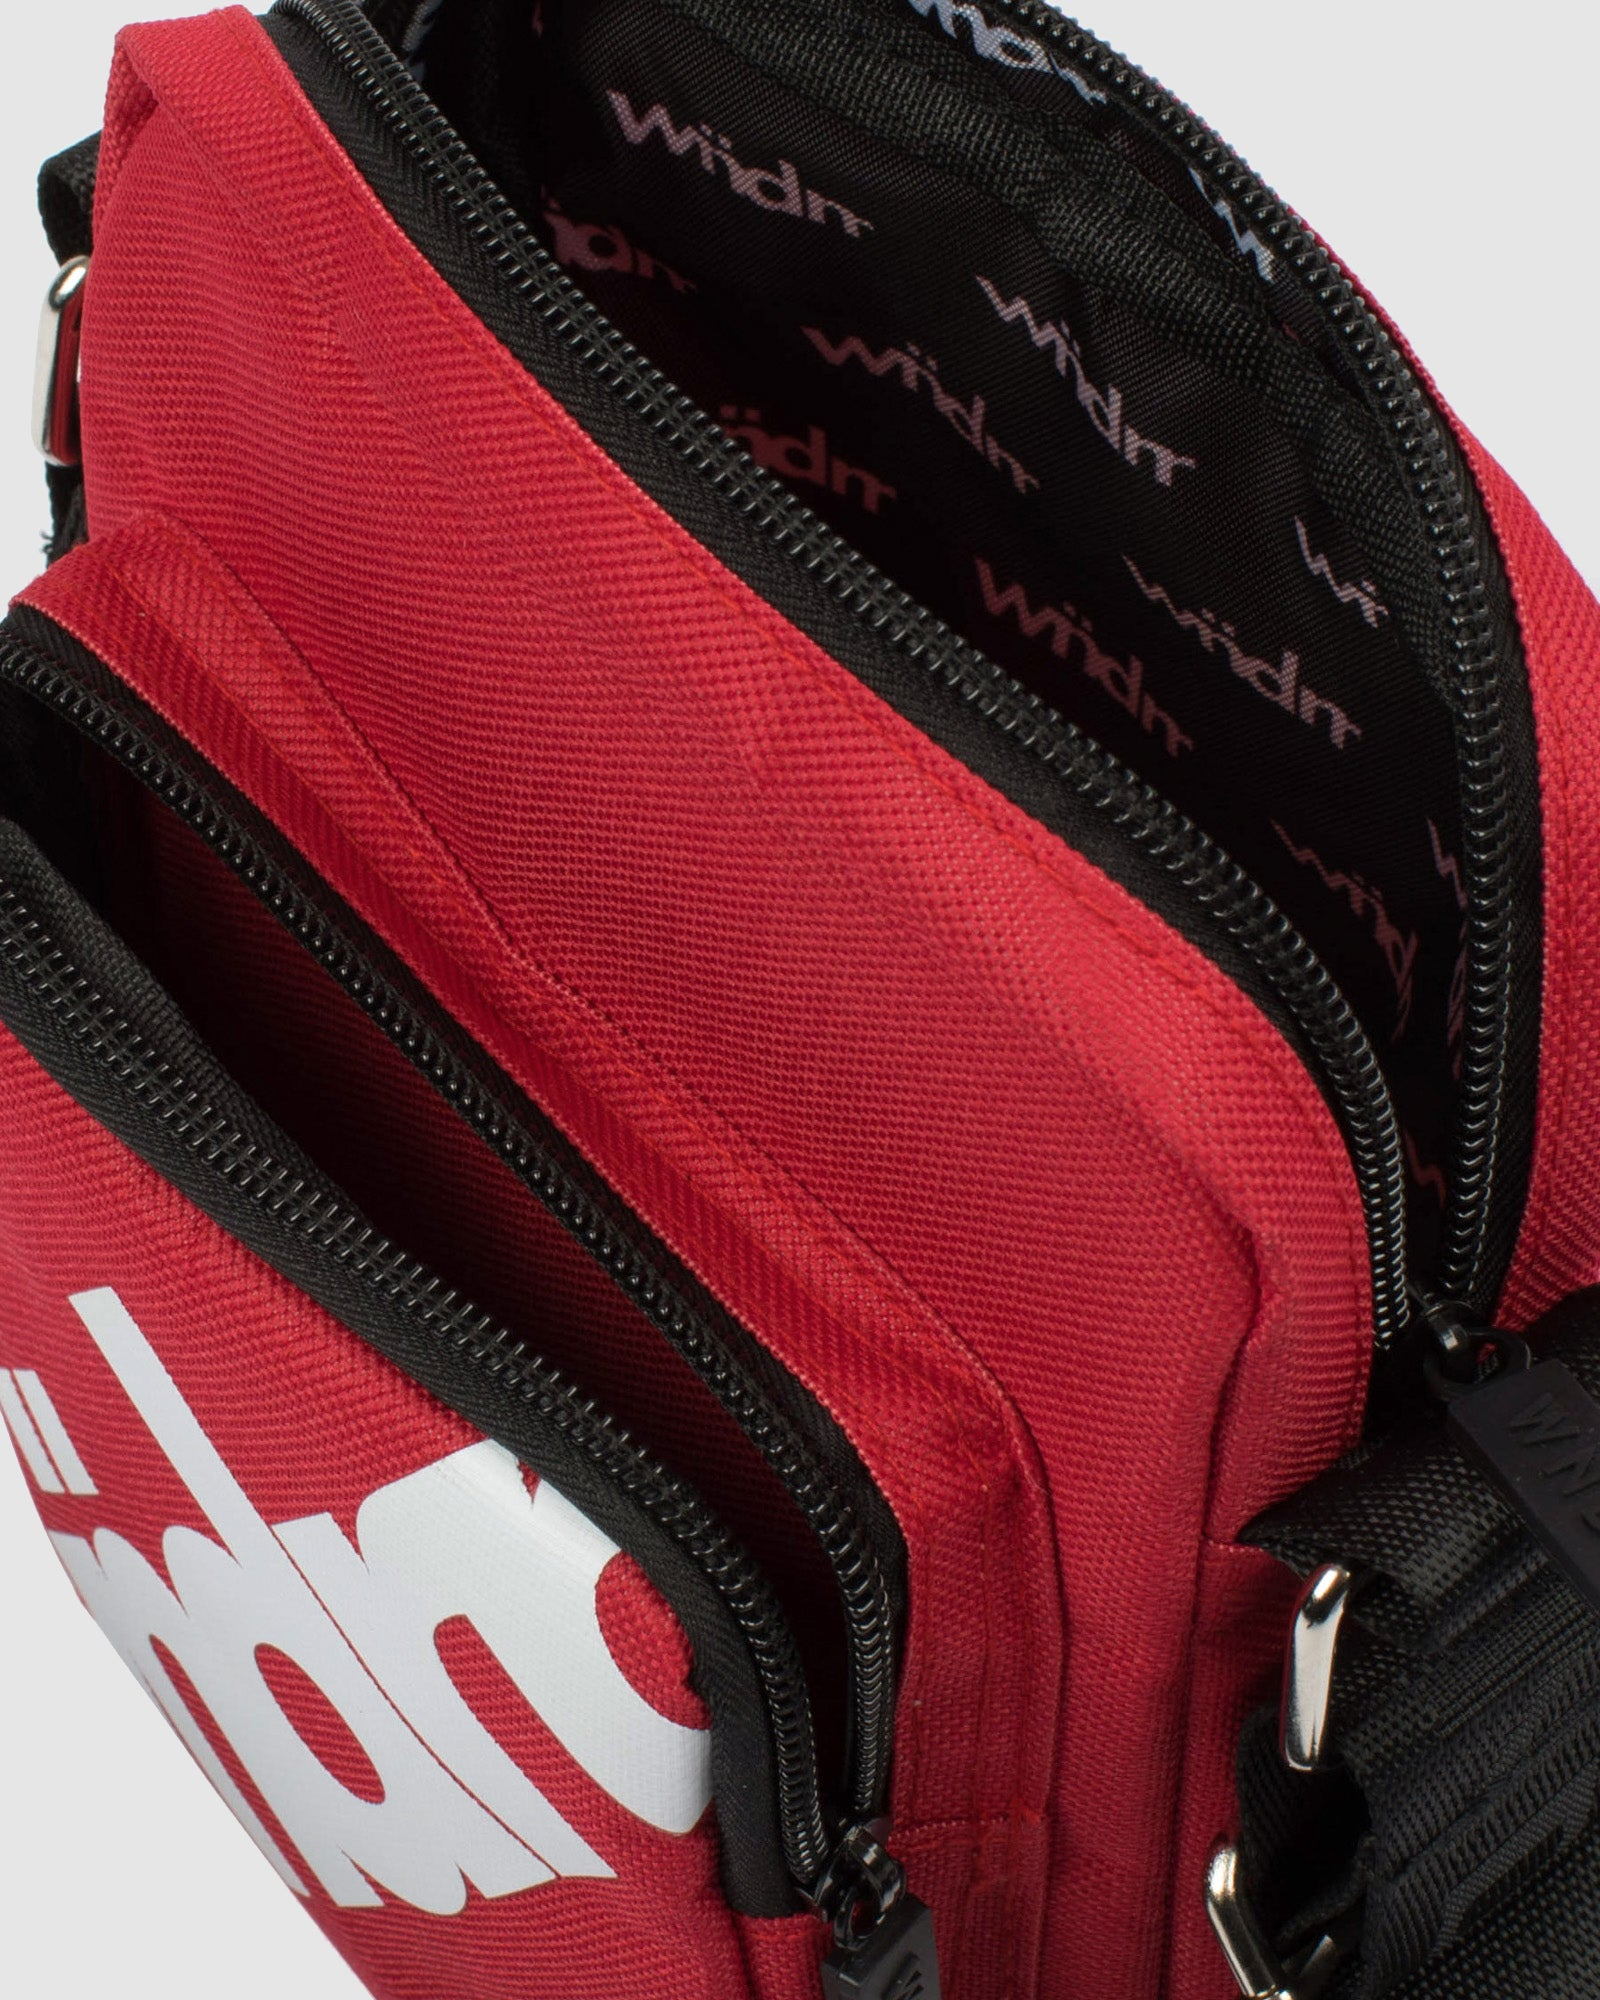 Wndrr Divide Side Bag - Red